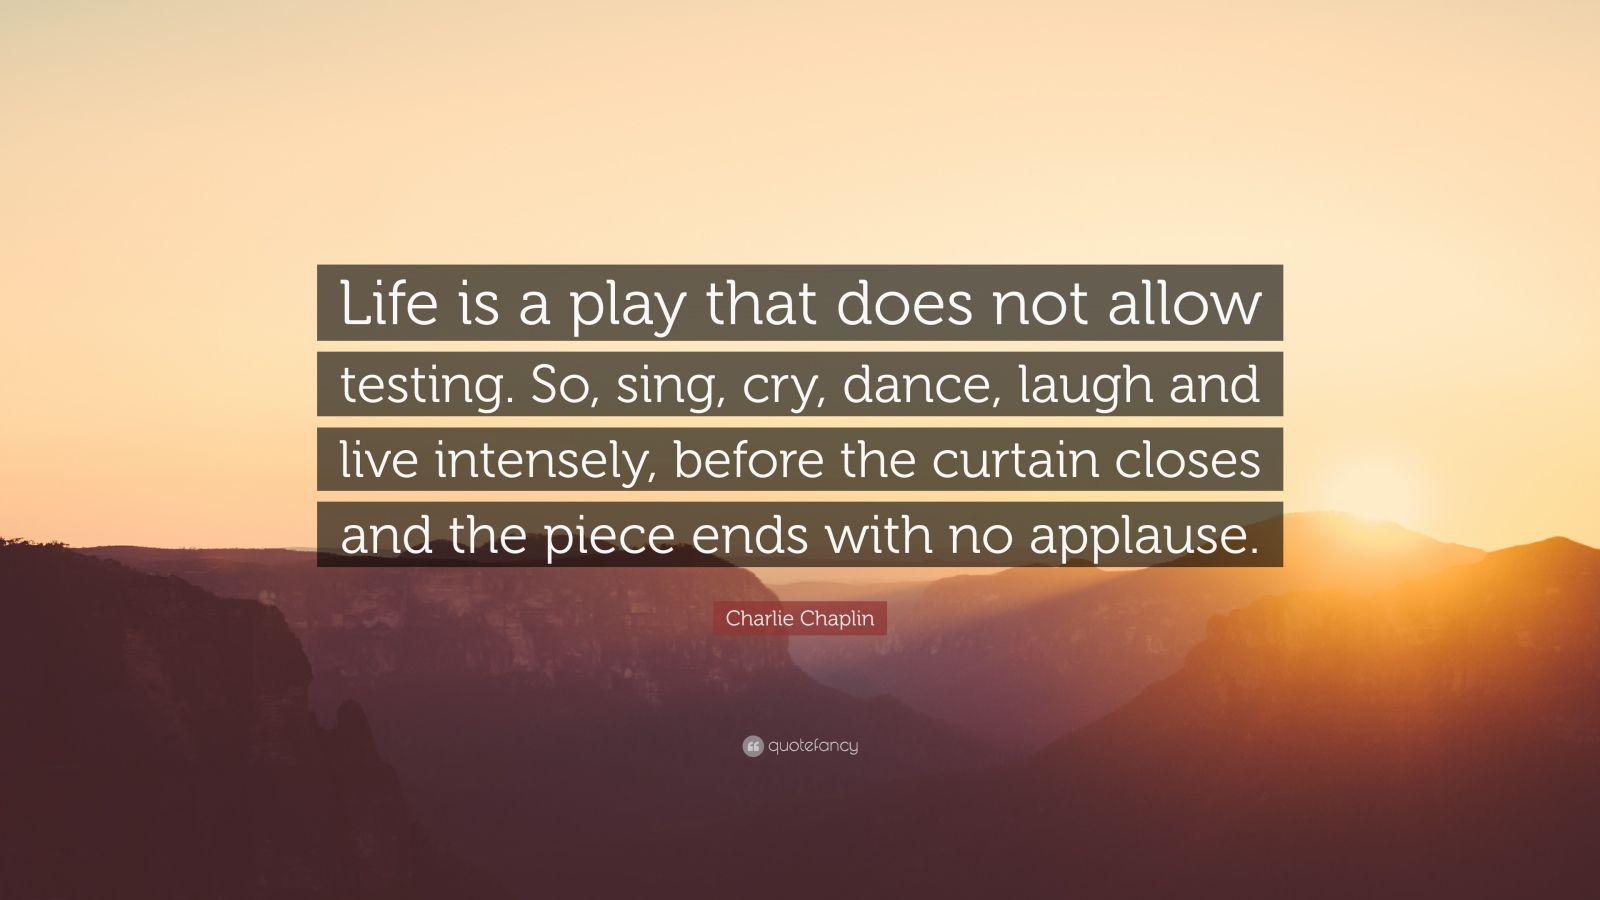 """Charlie Chaplin Quote: """"Life is a play that does not allow testing. So, sing, cry, dance, laugh and live intensely, before the curtain closes and the piece ends with no applause."""""""